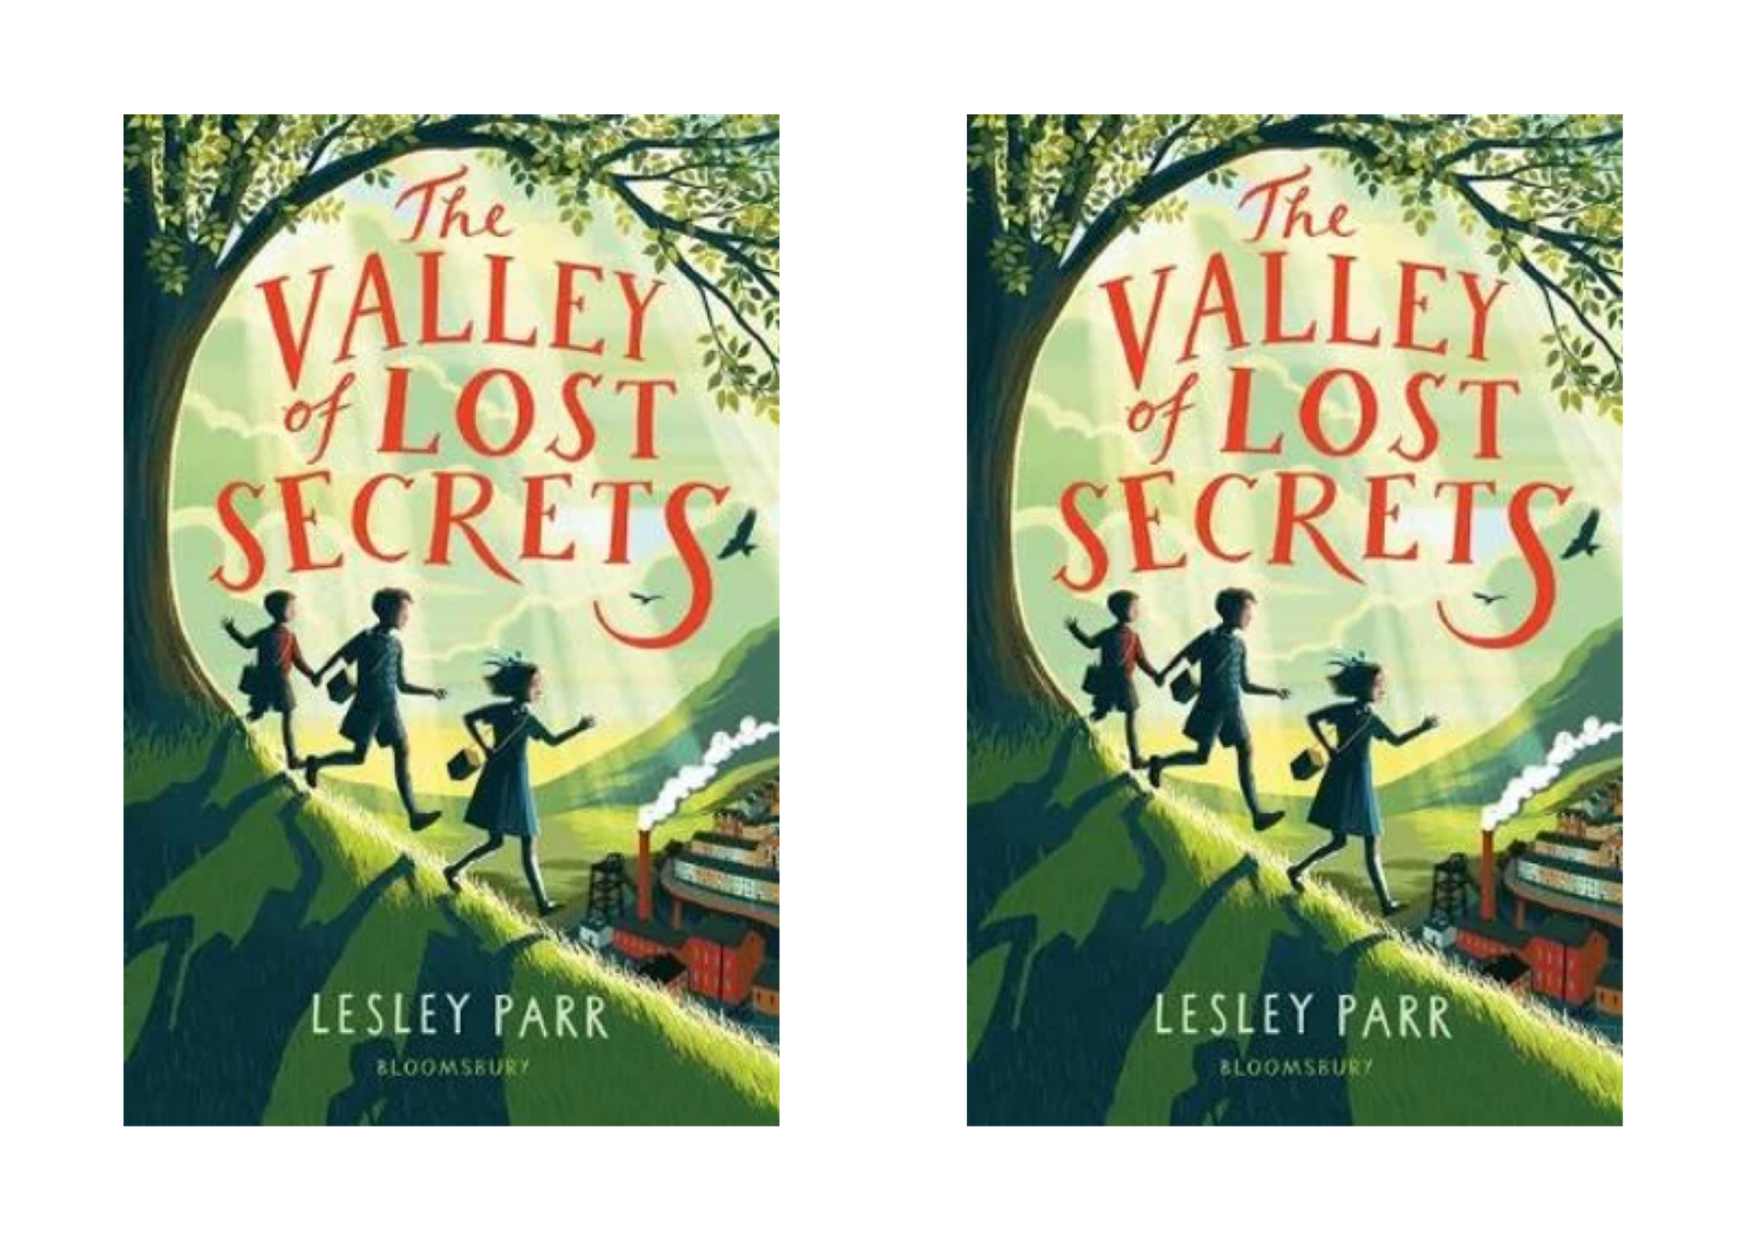 Bloomsbury - The Valley of Lost Secrets